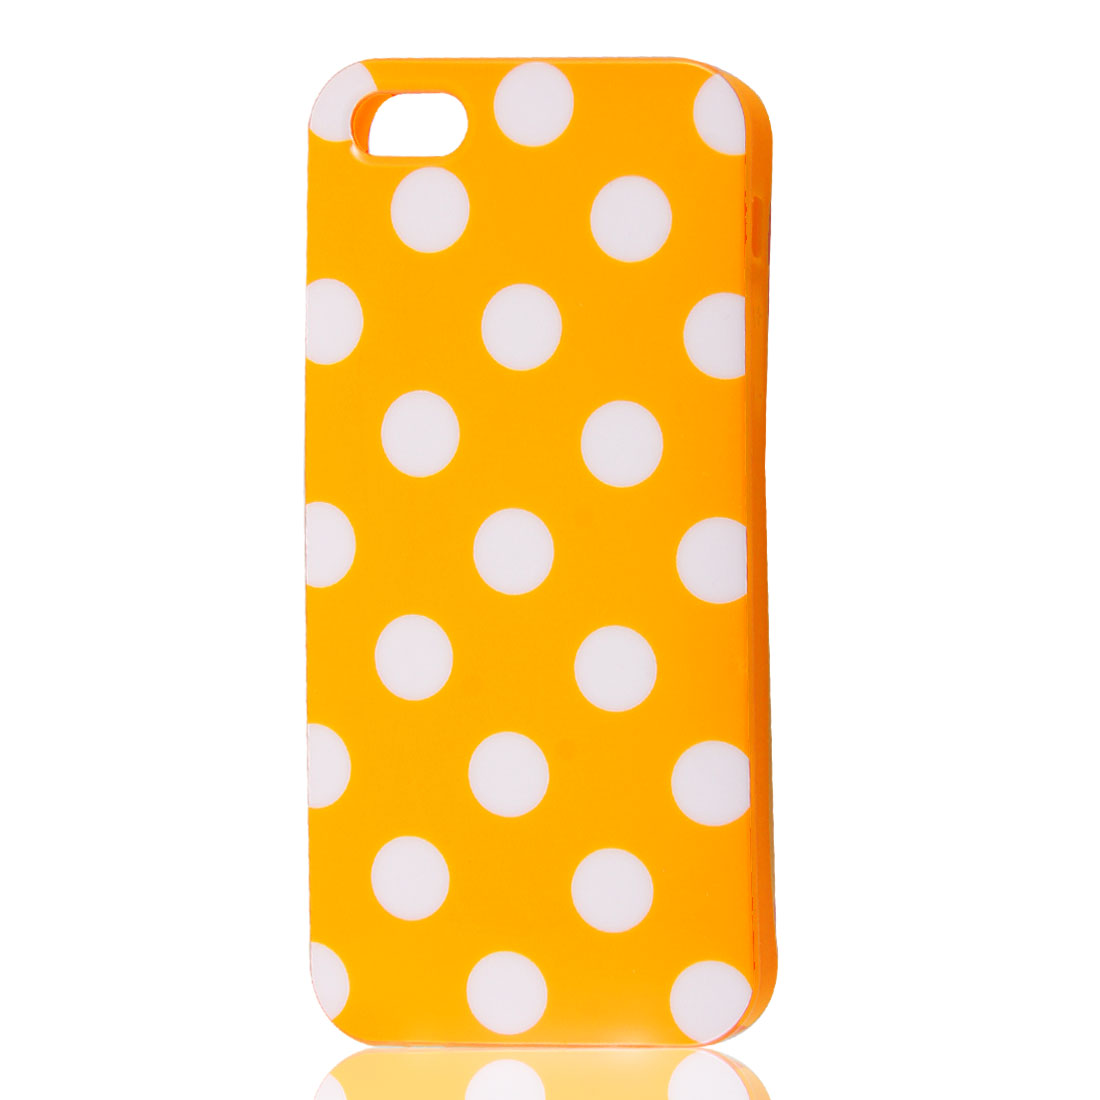 White Polka Dots Orange Soft Plastic Case Cover for Apple iPhone 5 5G